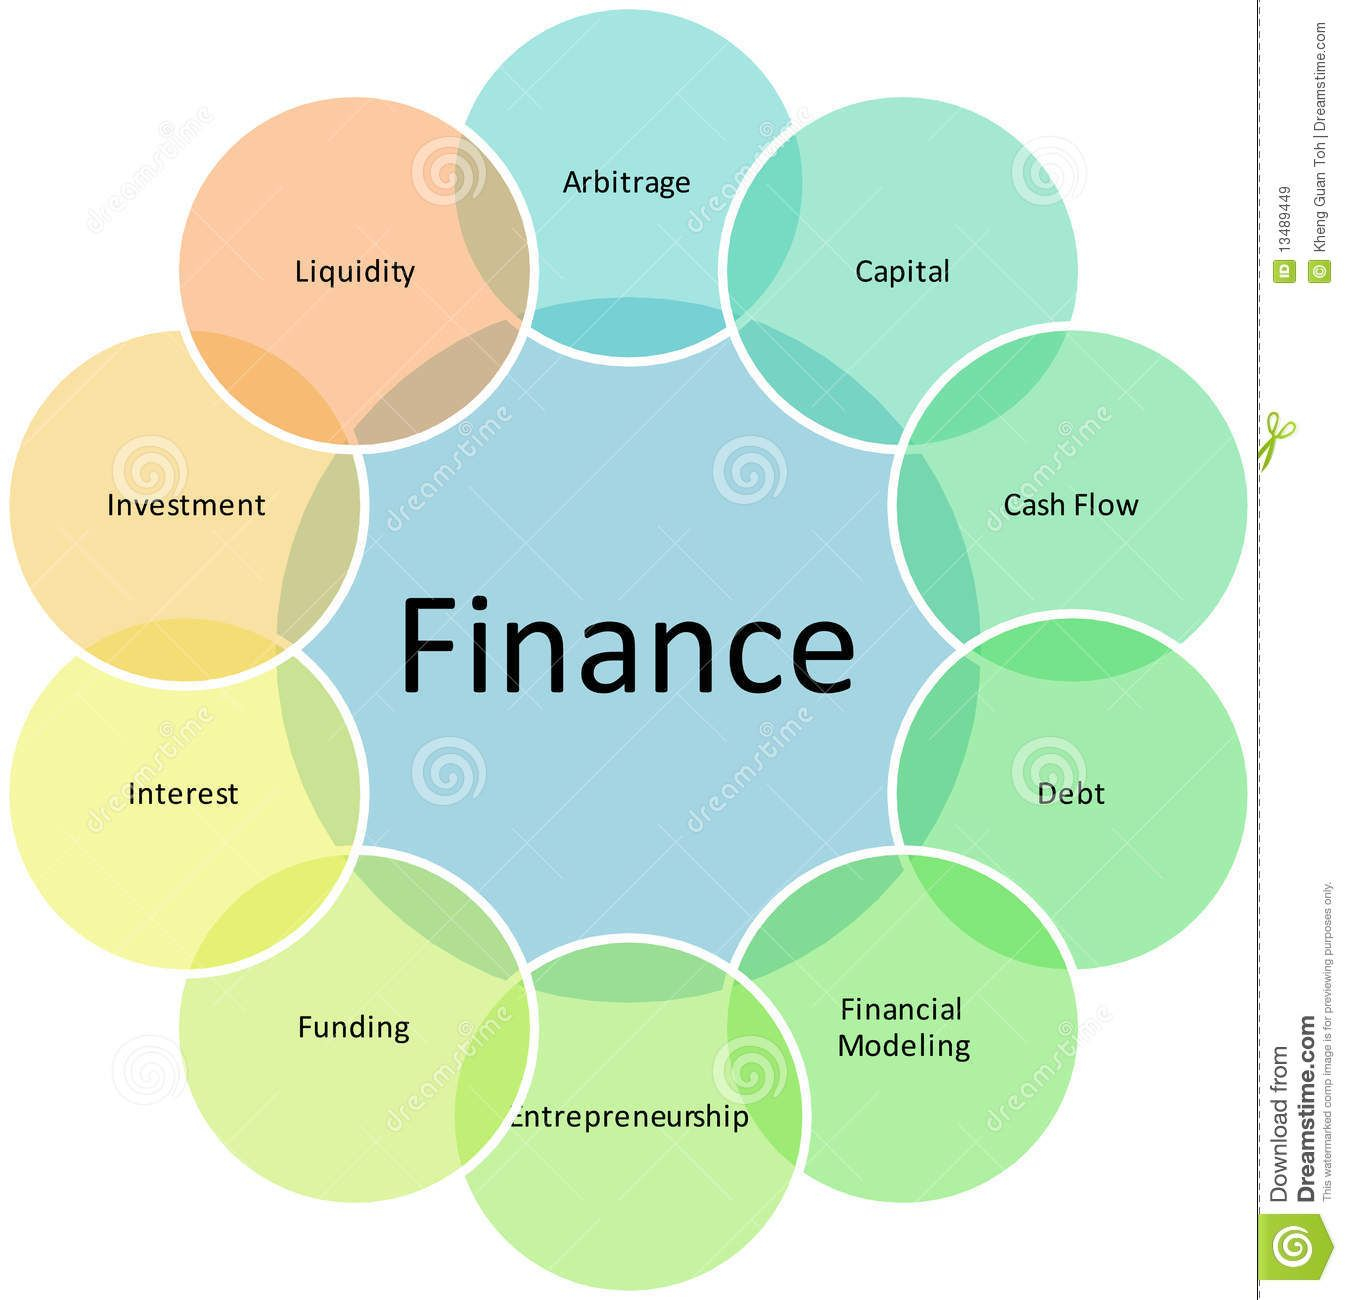 finance components business diagram stock illustration [ 1347 x 1300 Pixel ]